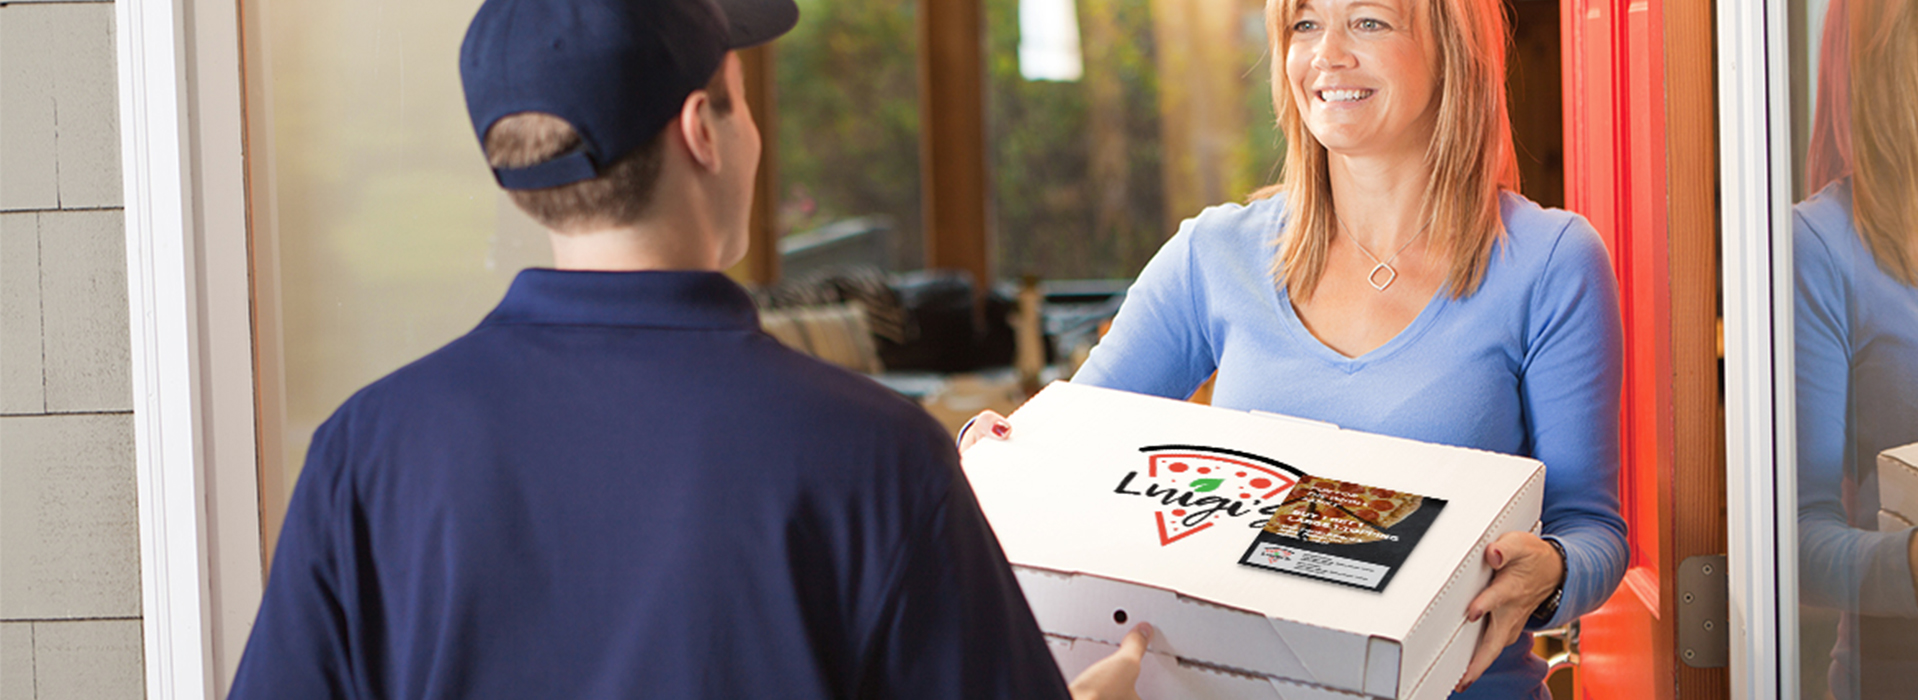 Pizza delivery driver wearing logo-branded apparel delivering pizza with custom-printed Post-it Note coupon on box top